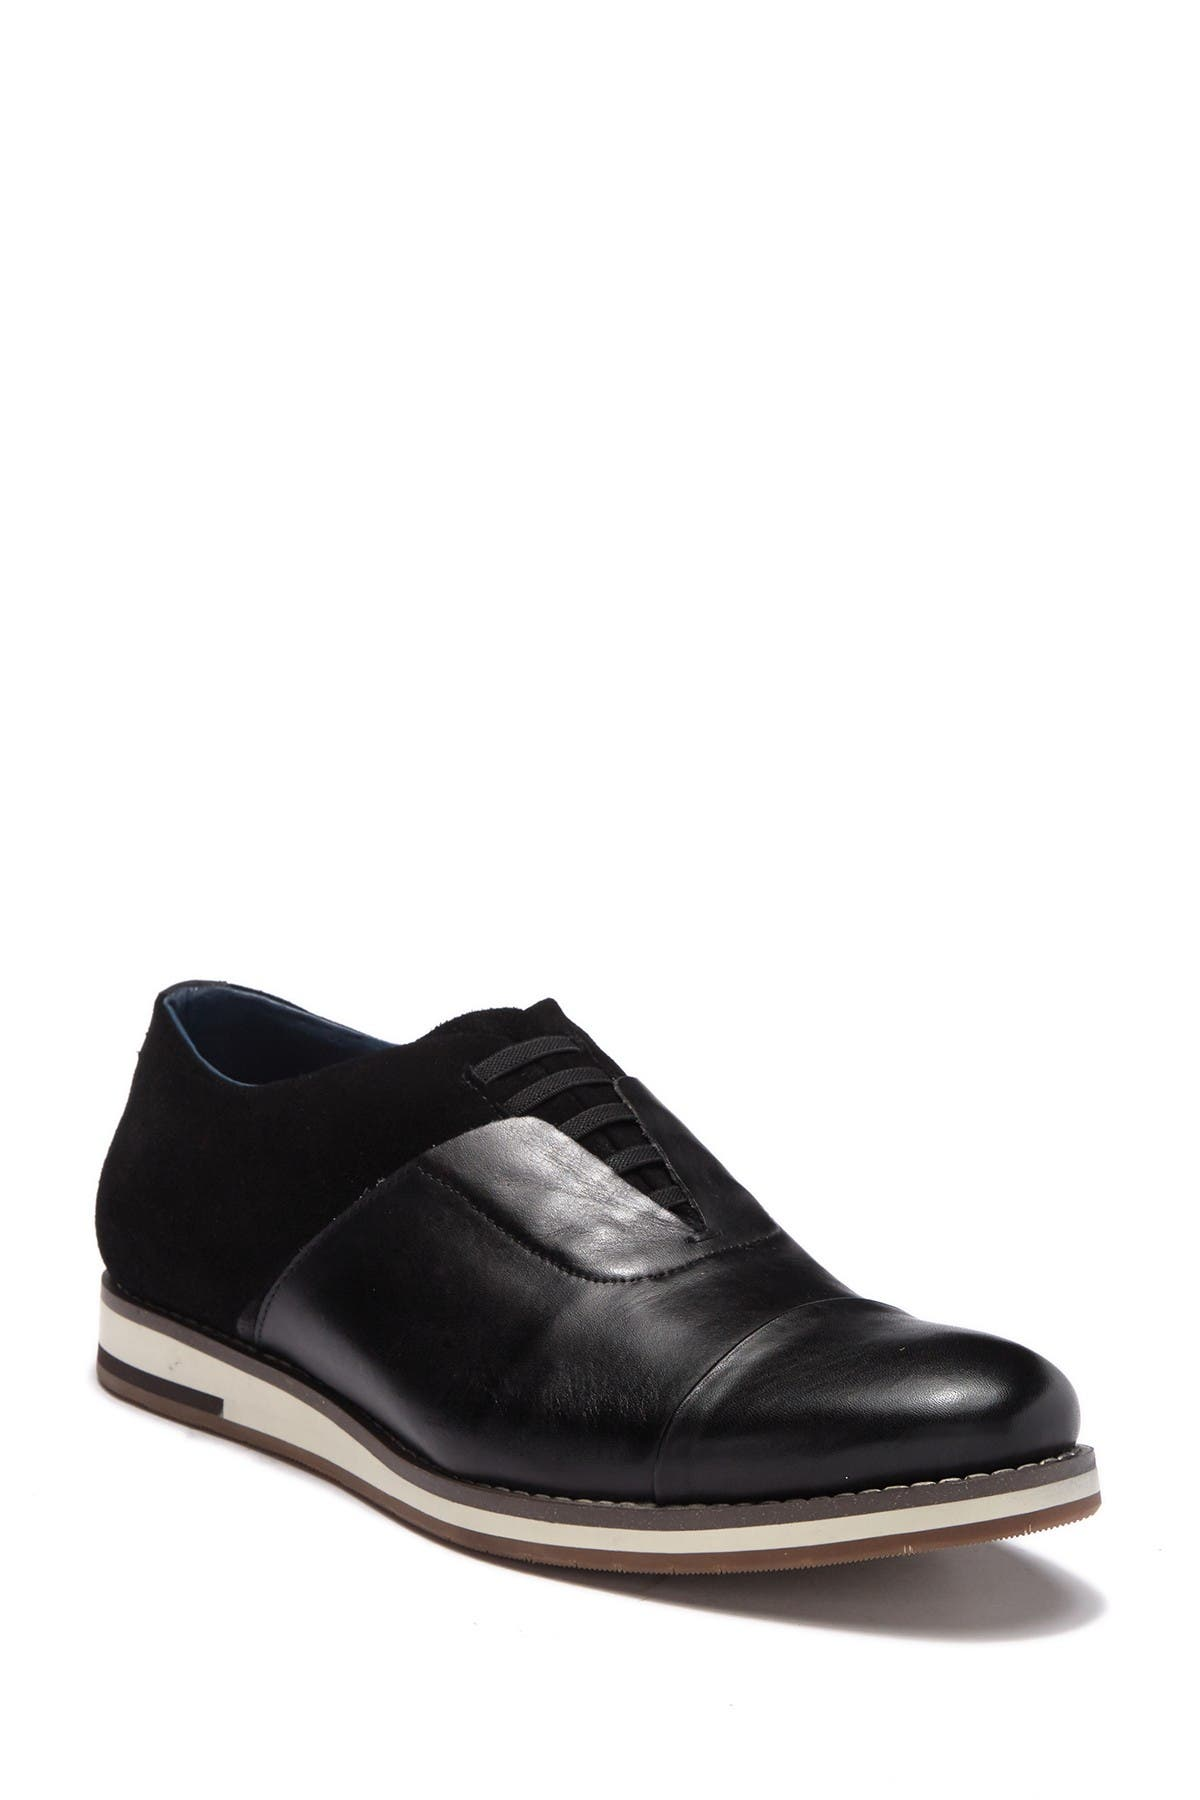 Image of Vintage Foundry The Laurent Leather Oxford